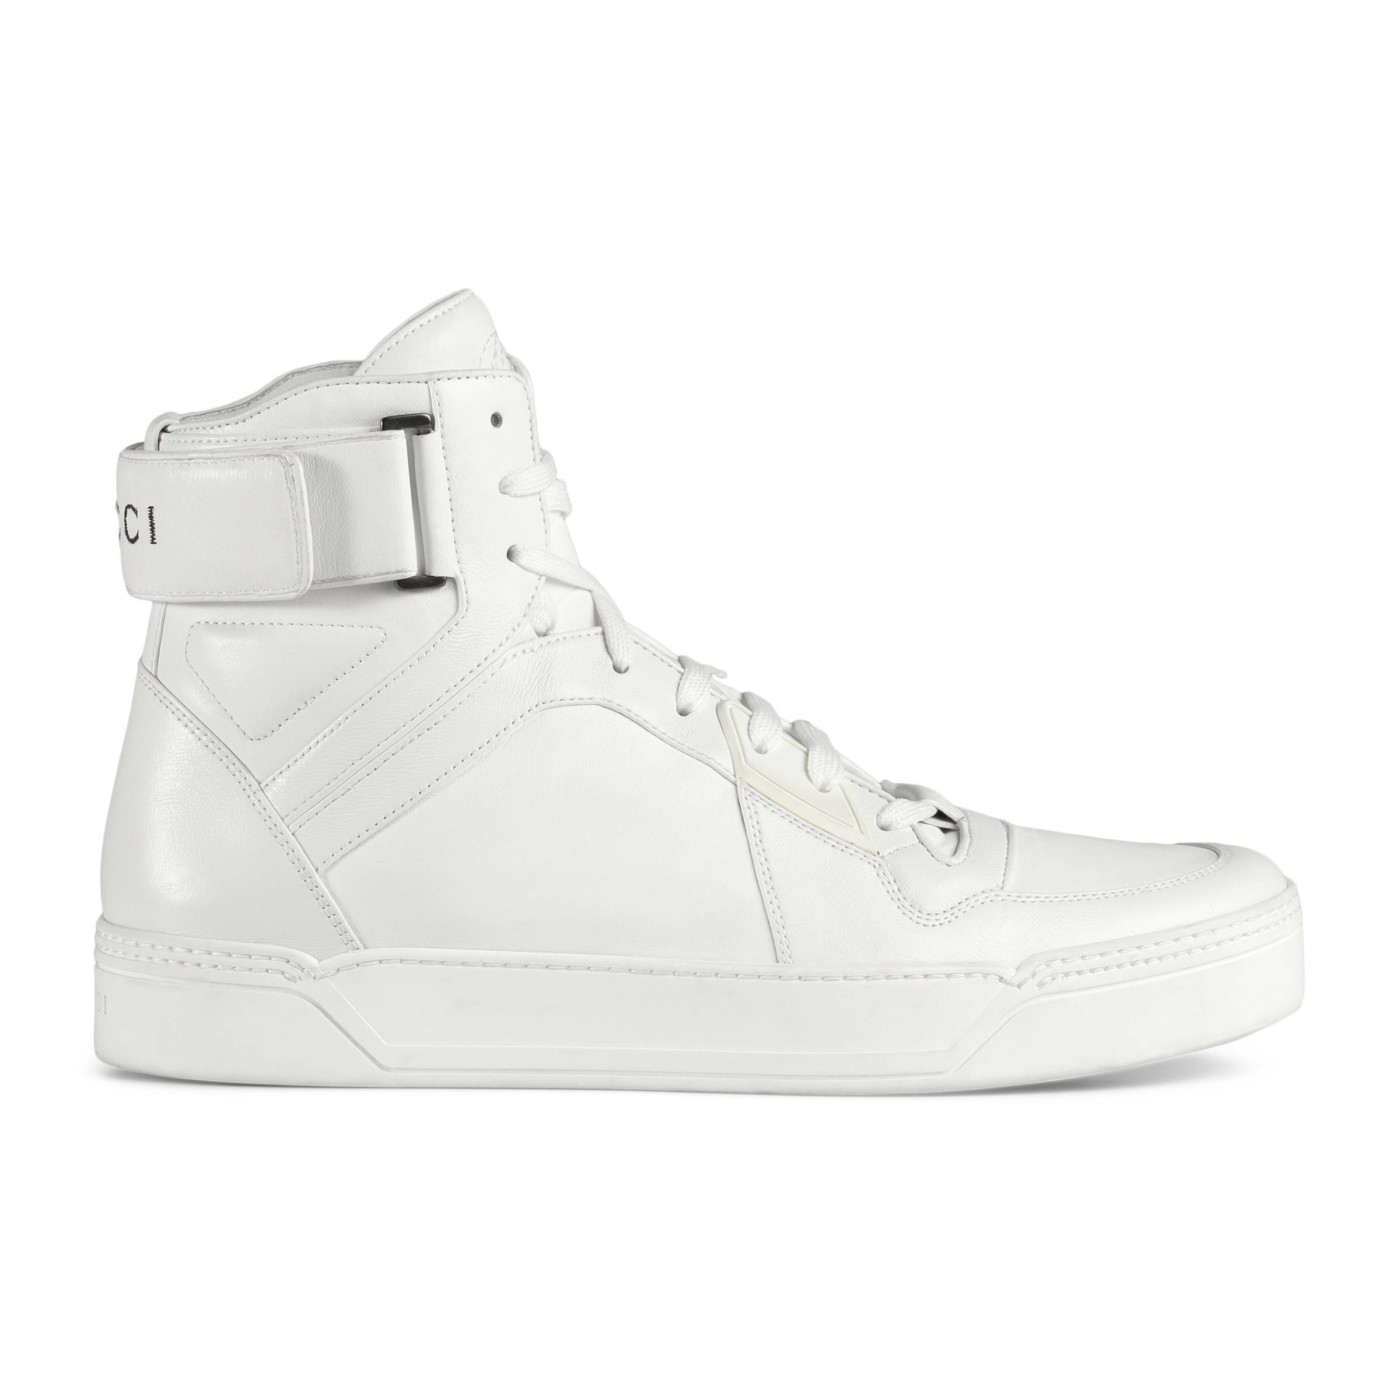 Gucci Men\u0027s White GG Soft Leather High Top Sneakers Shoes